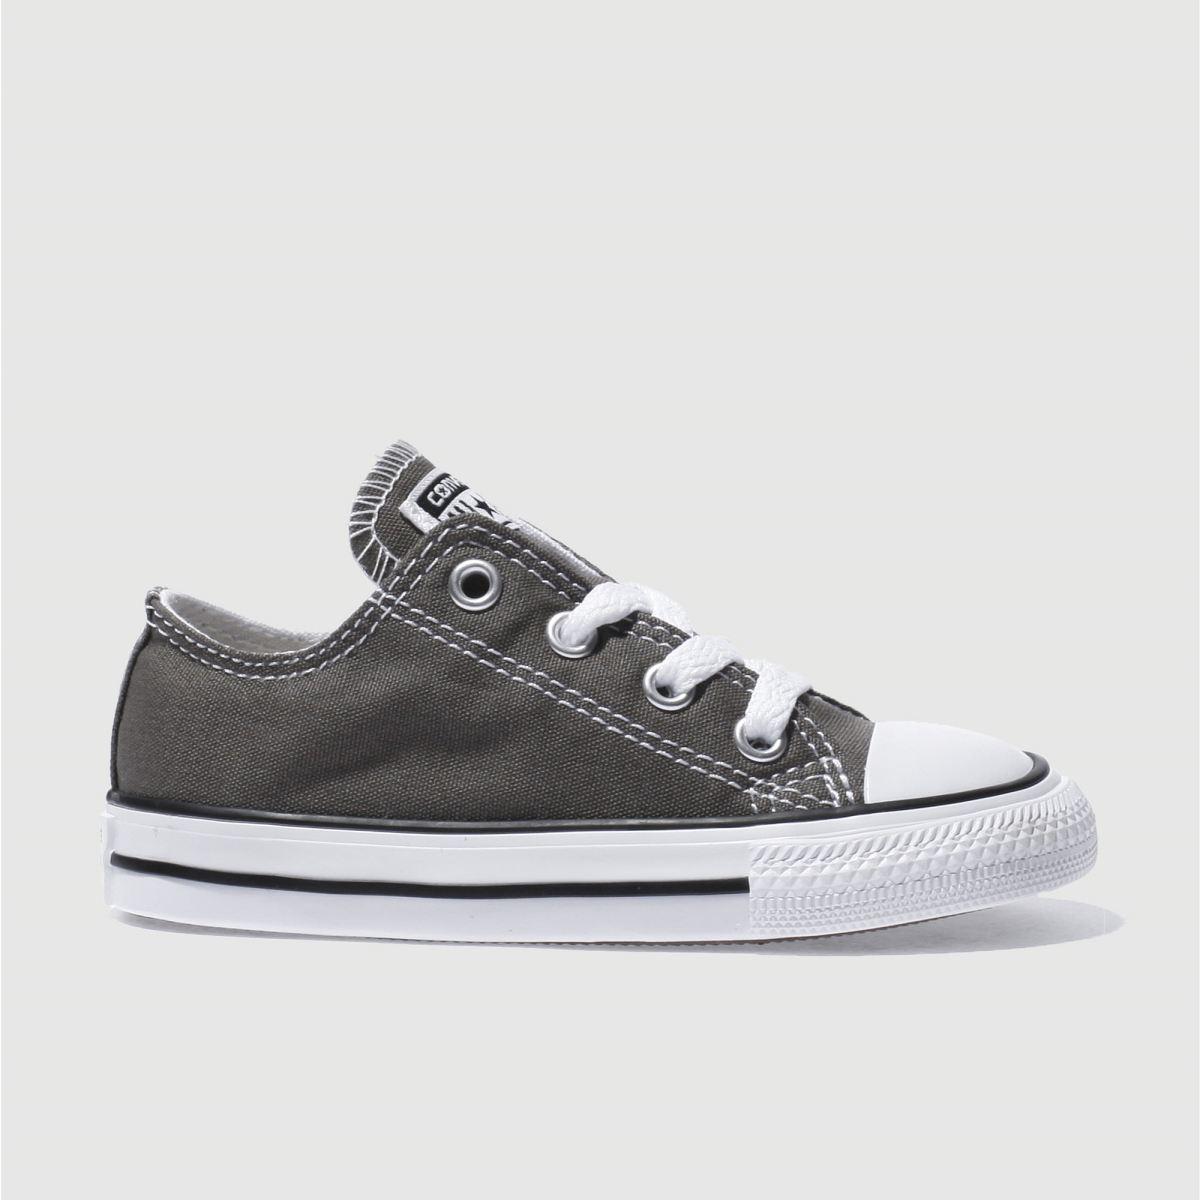 converse grey all star lo Boys Toddler Trainers